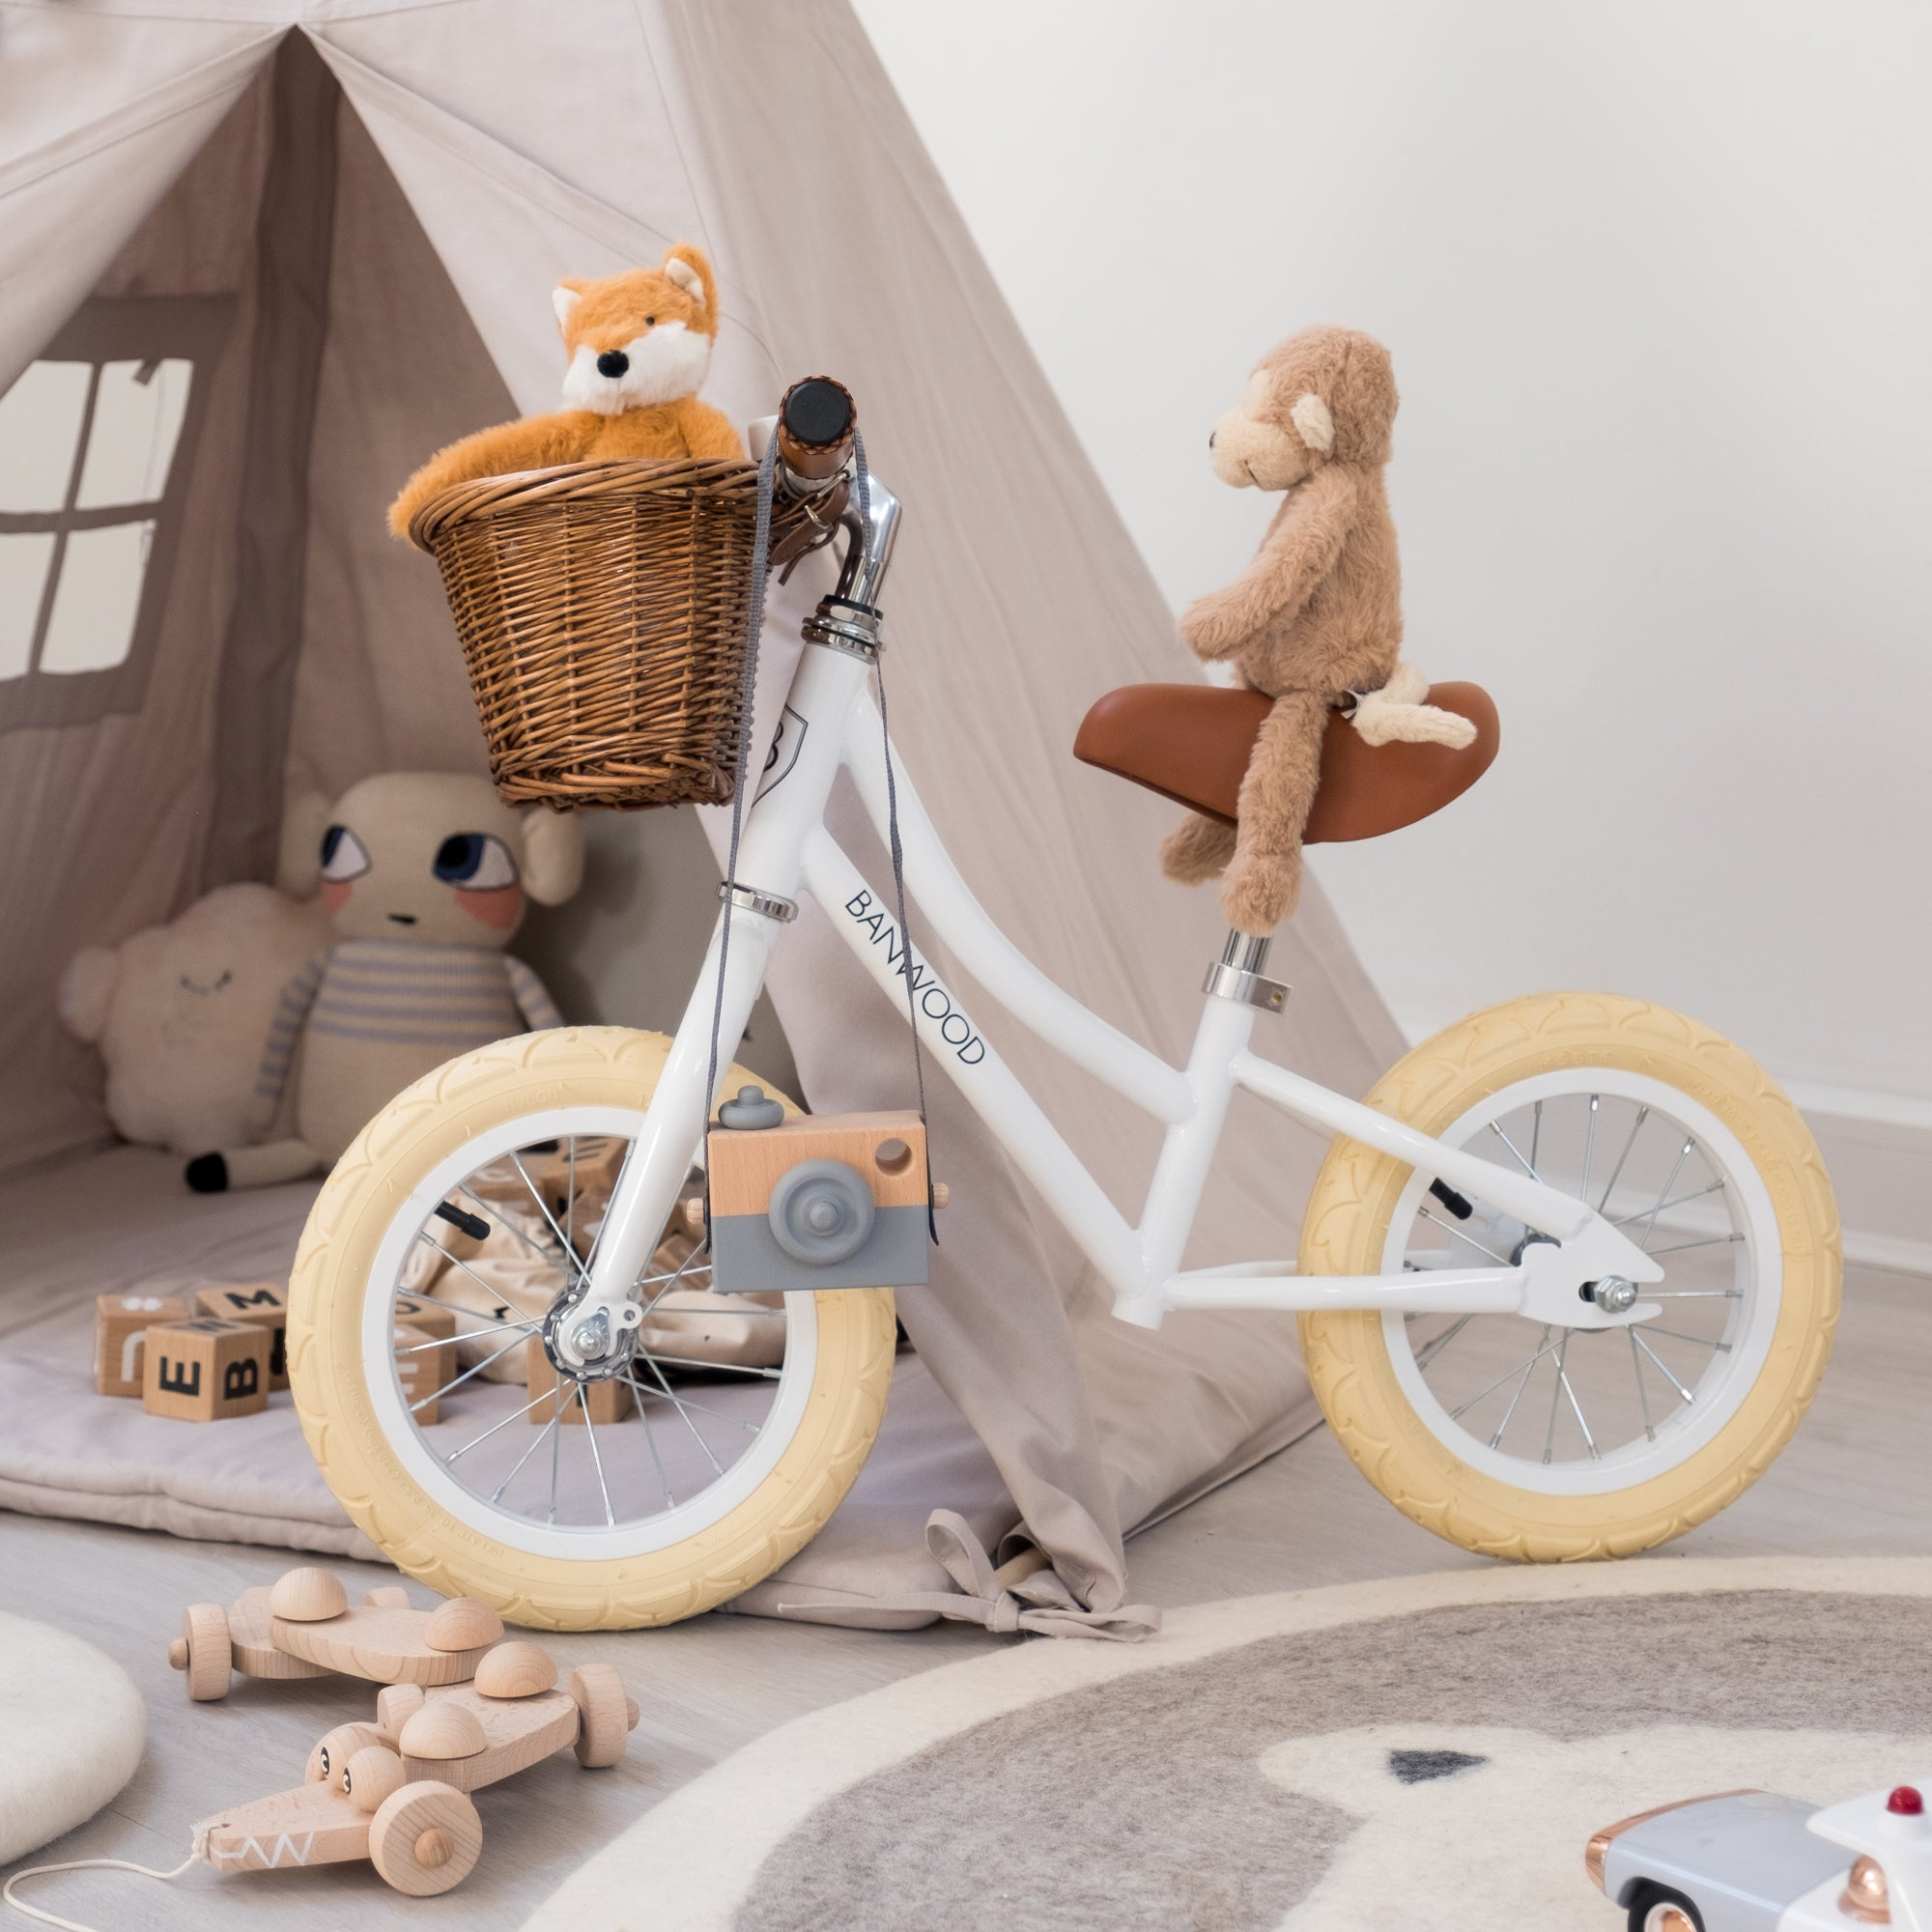 First Go Balance Bike by Banwood, styled by Bobby Rabbit.